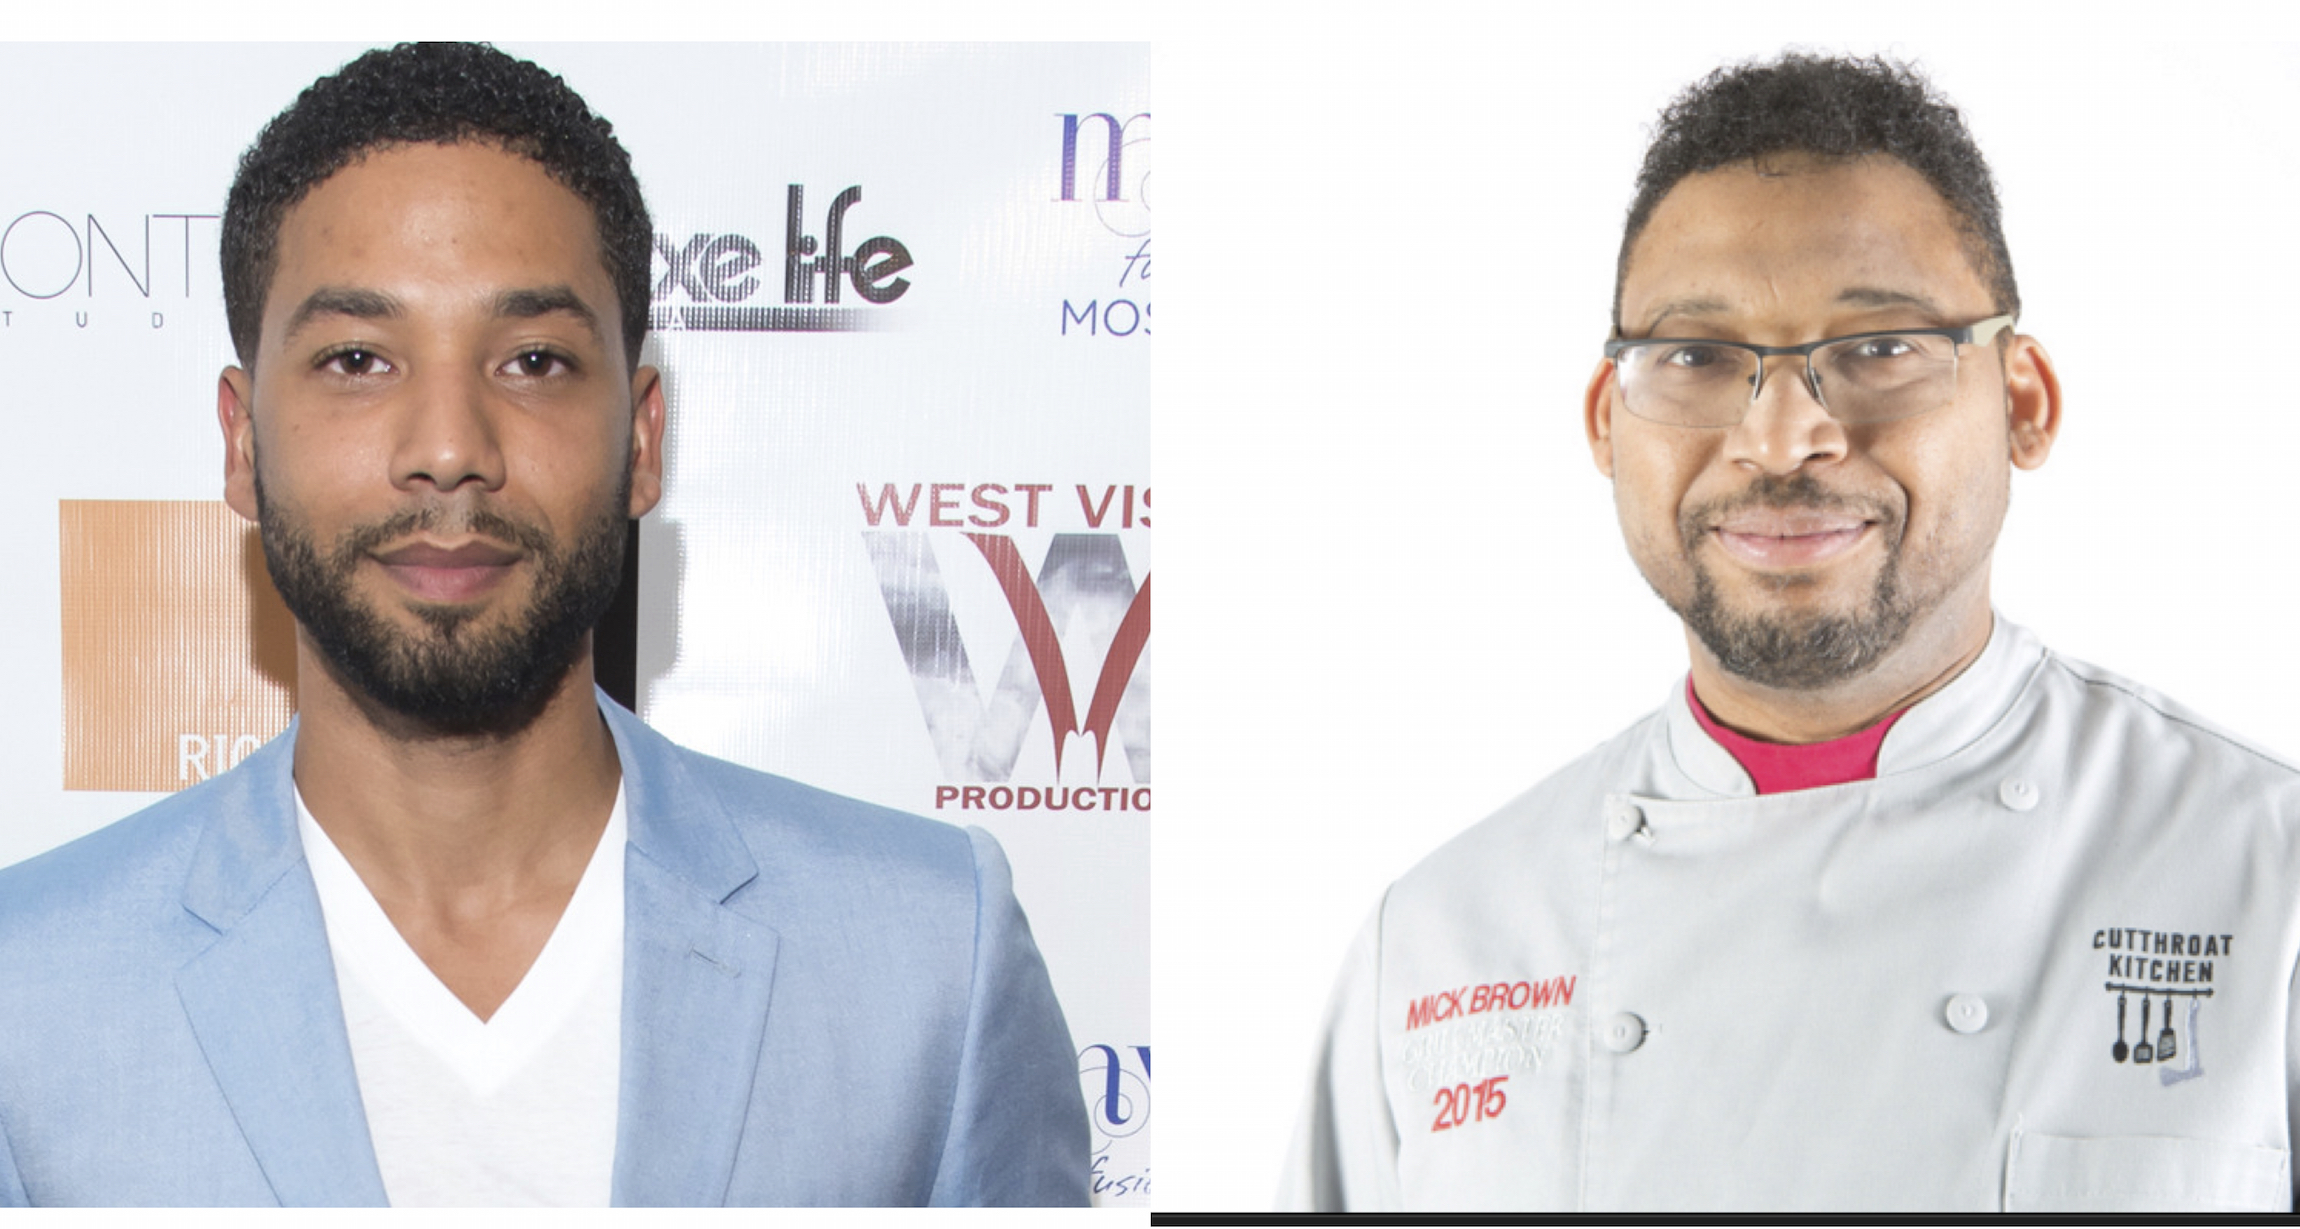 #JussieSmollett #ChefMickBrown